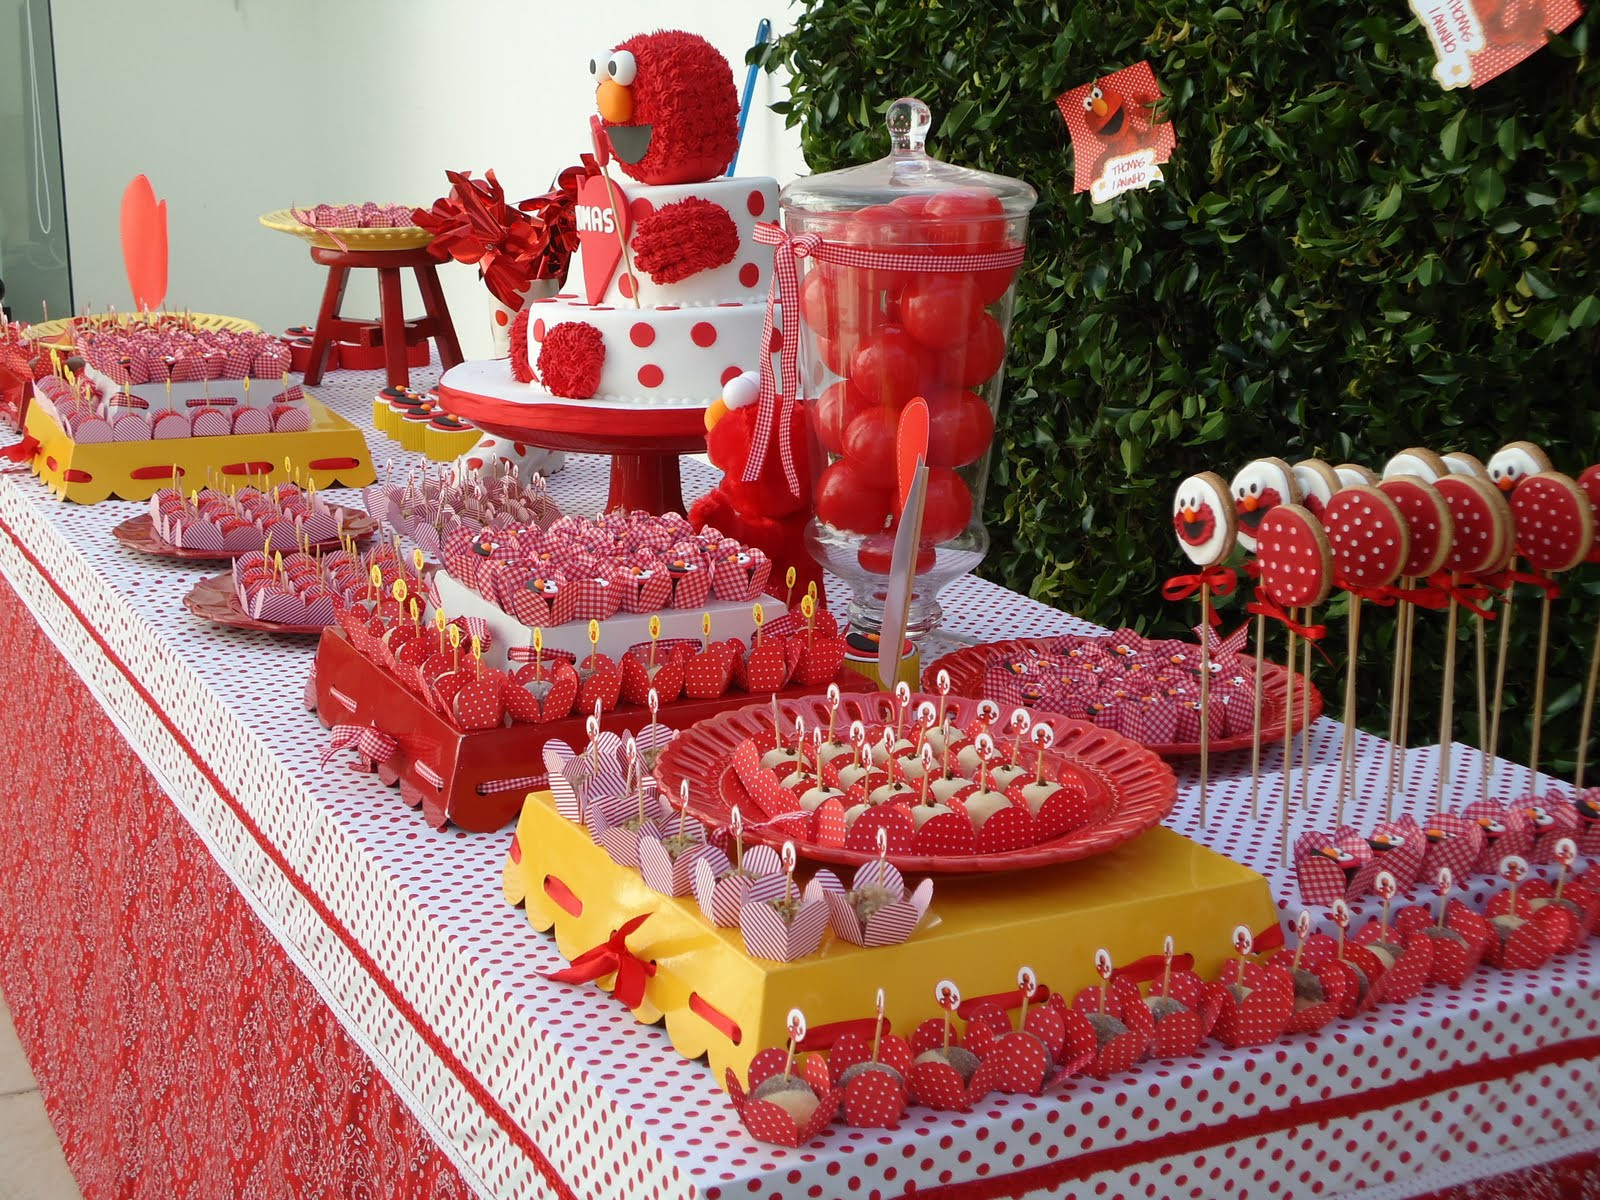 Best ideas about Elmo Birthday Party . Save or Pin Kara s Party Ideas Elmo Birthday Party Now.